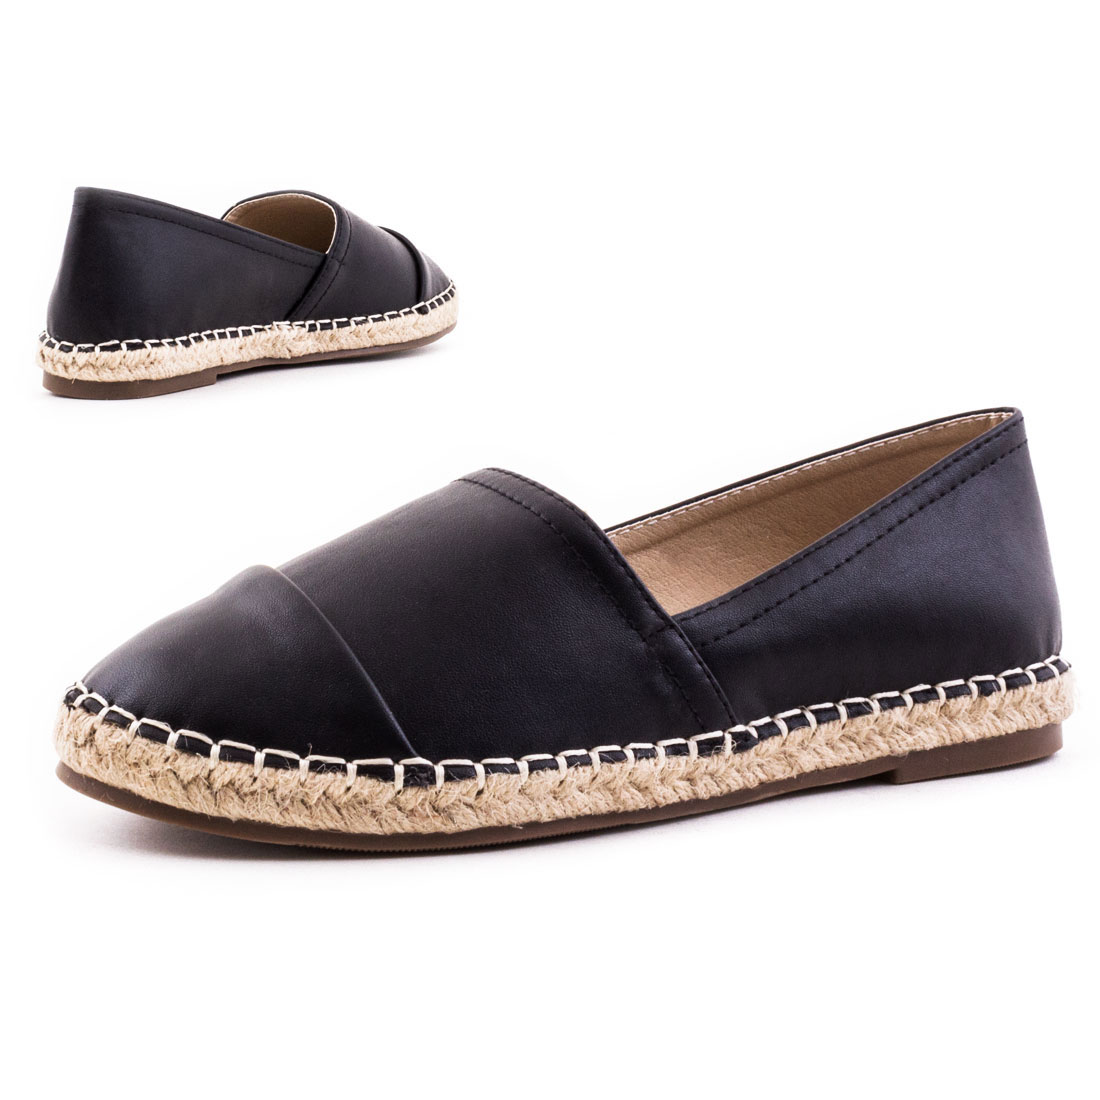 neu damen slip ons ballerinas espadrilles bast schuhe gr 36 37 38 39 40 41 ebay. Black Bedroom Furniture Sets. Home Design Ideas